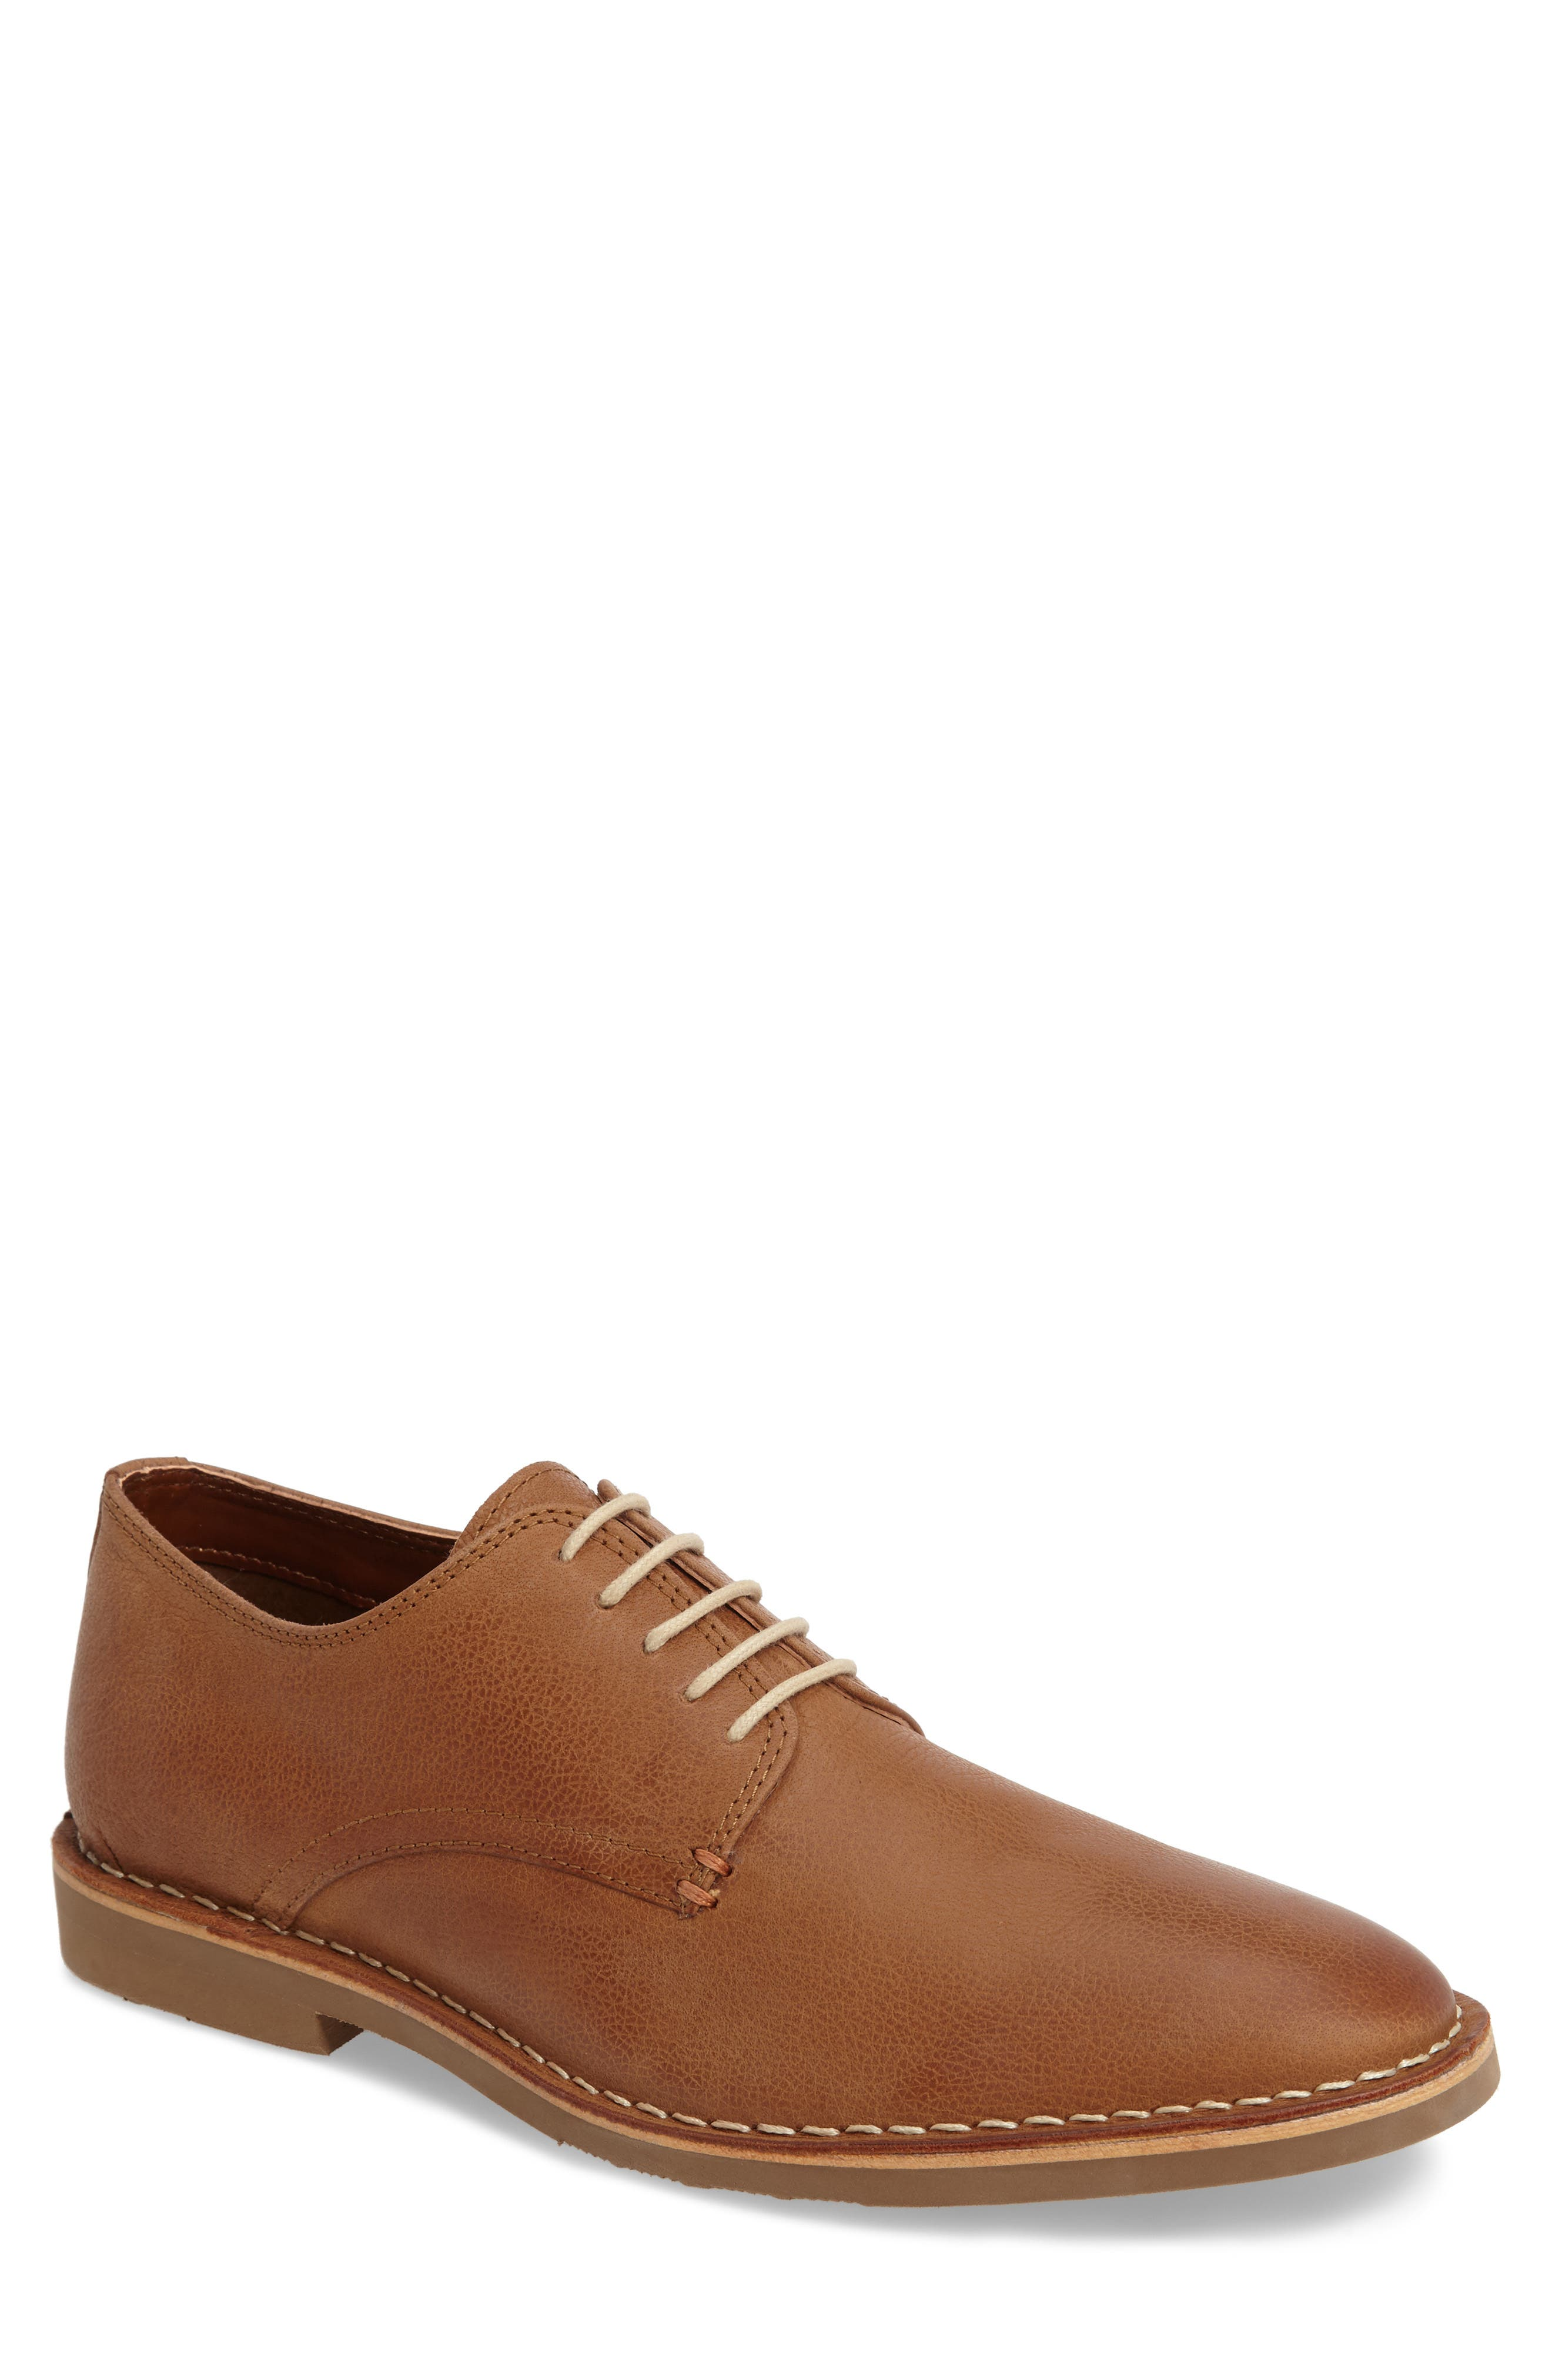 Kenneth Cole New York En-Deer-ing Derby,                             Main thumbnail 1, color,                             Tan Leather